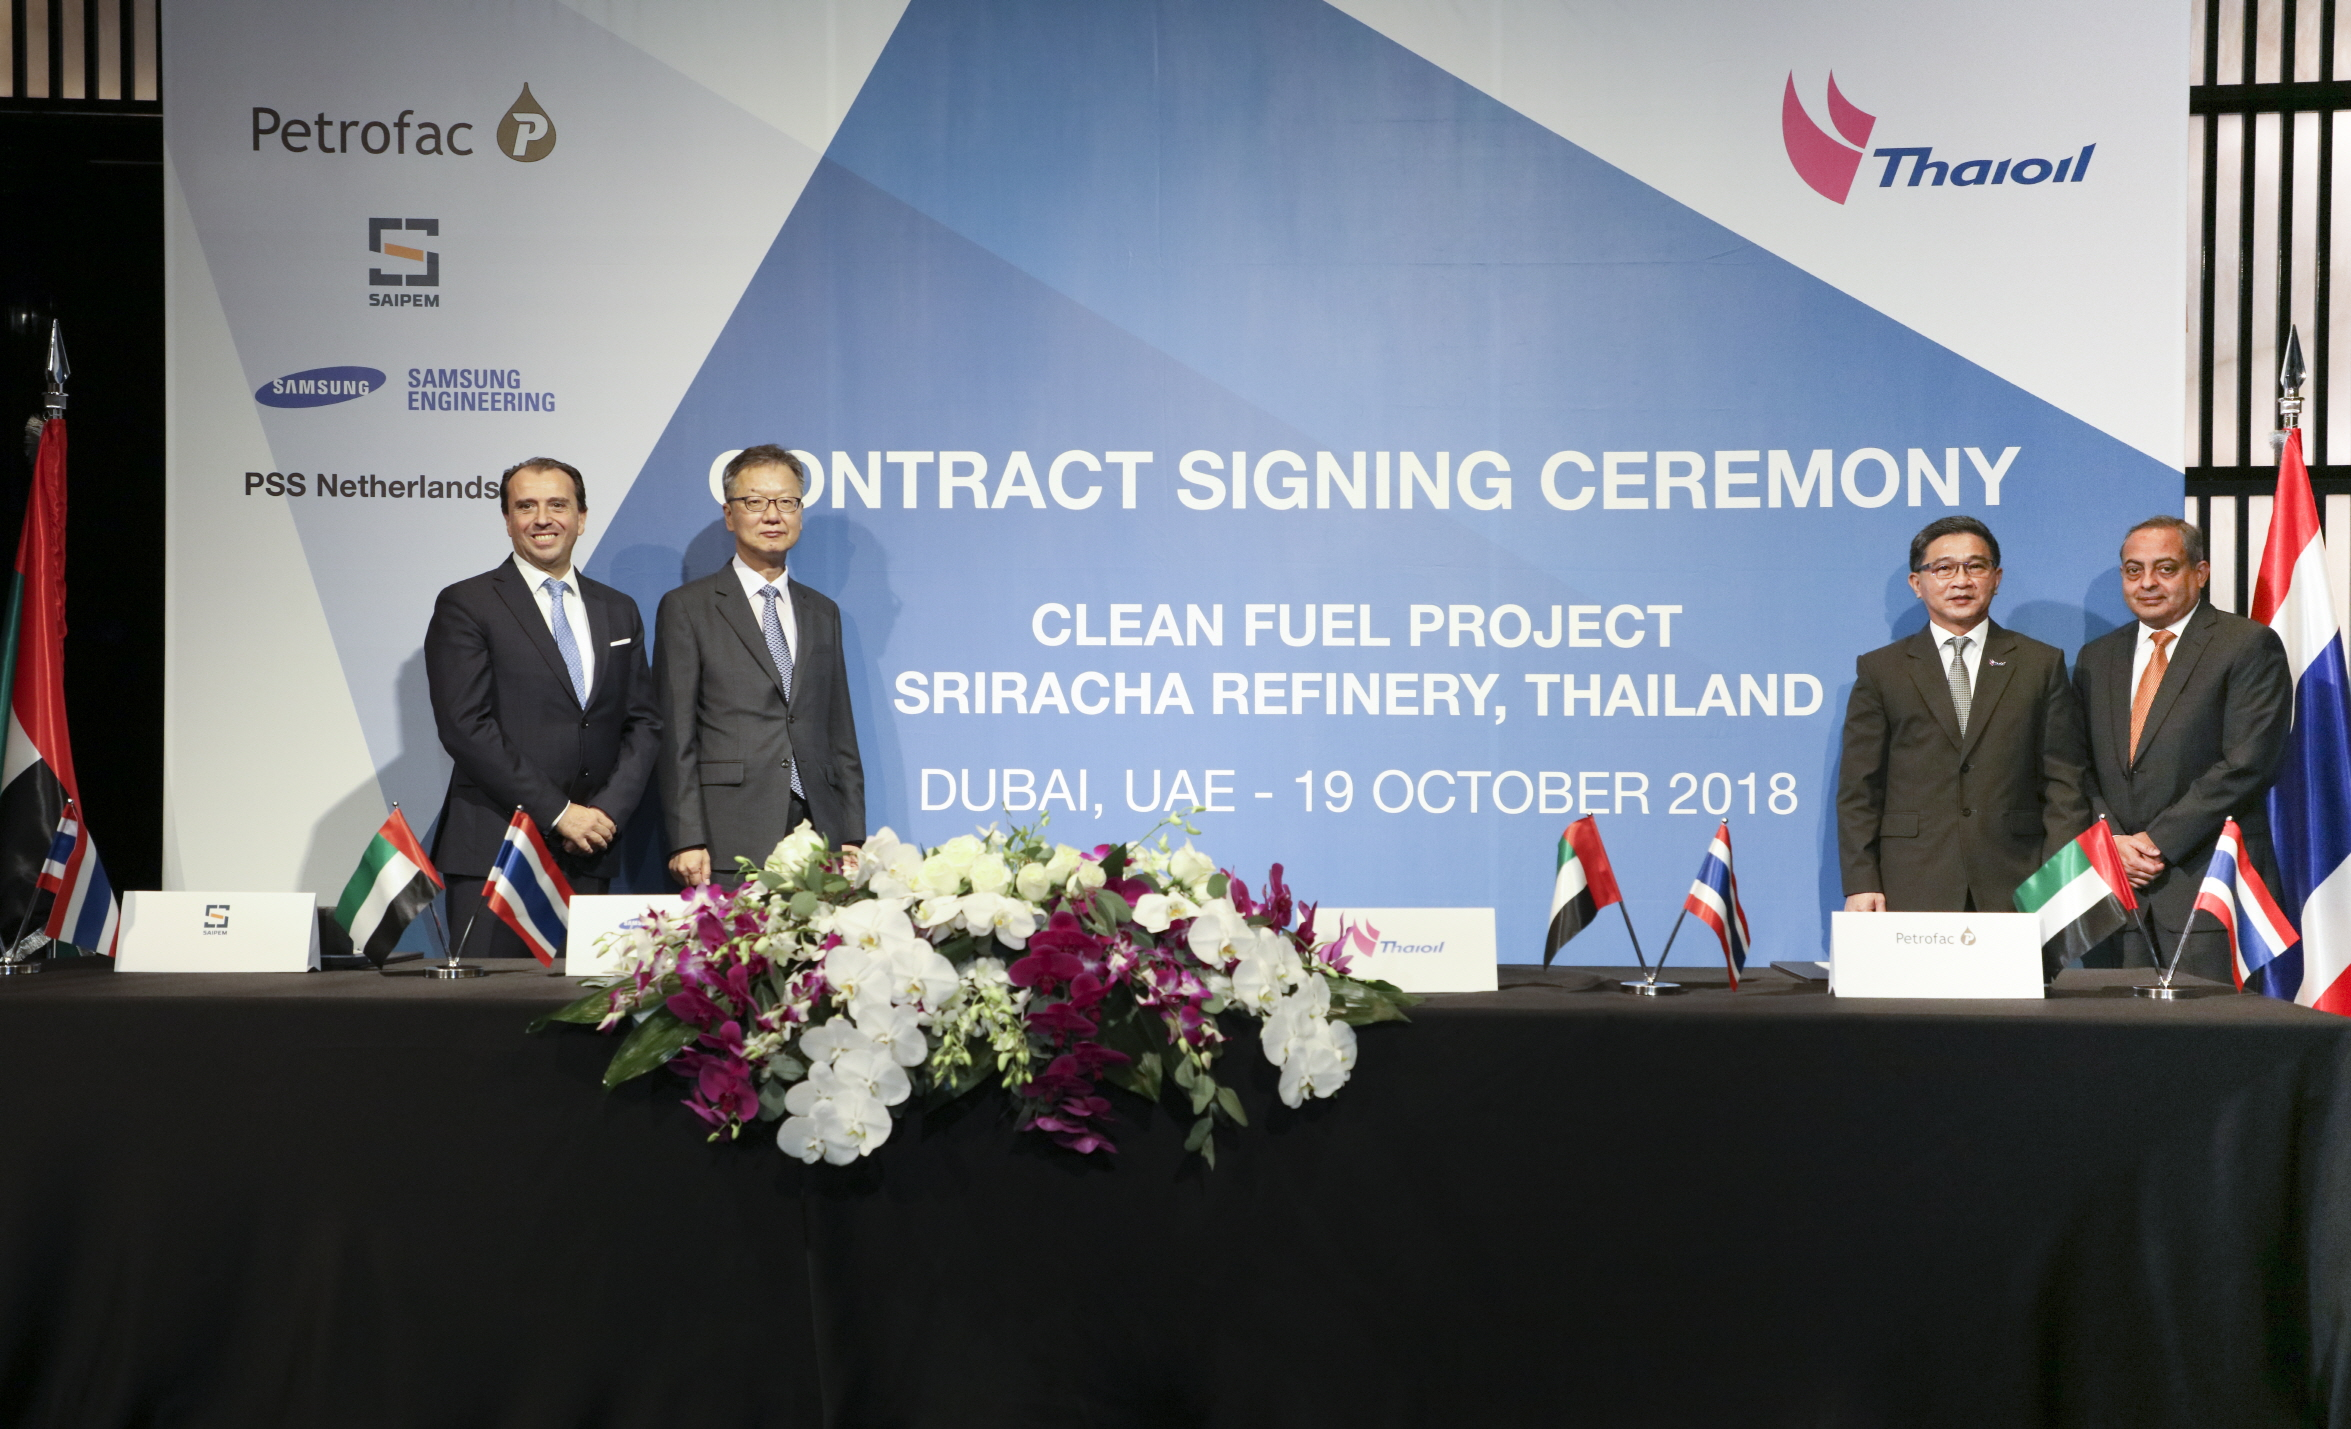 ... Sung An Choi, President and CEO of Samsung Engineering, Atikom  Terbsiri, President & CEO of Thai Oil, Sunder Kalyanam, Group Managing  Director of E&C of ...